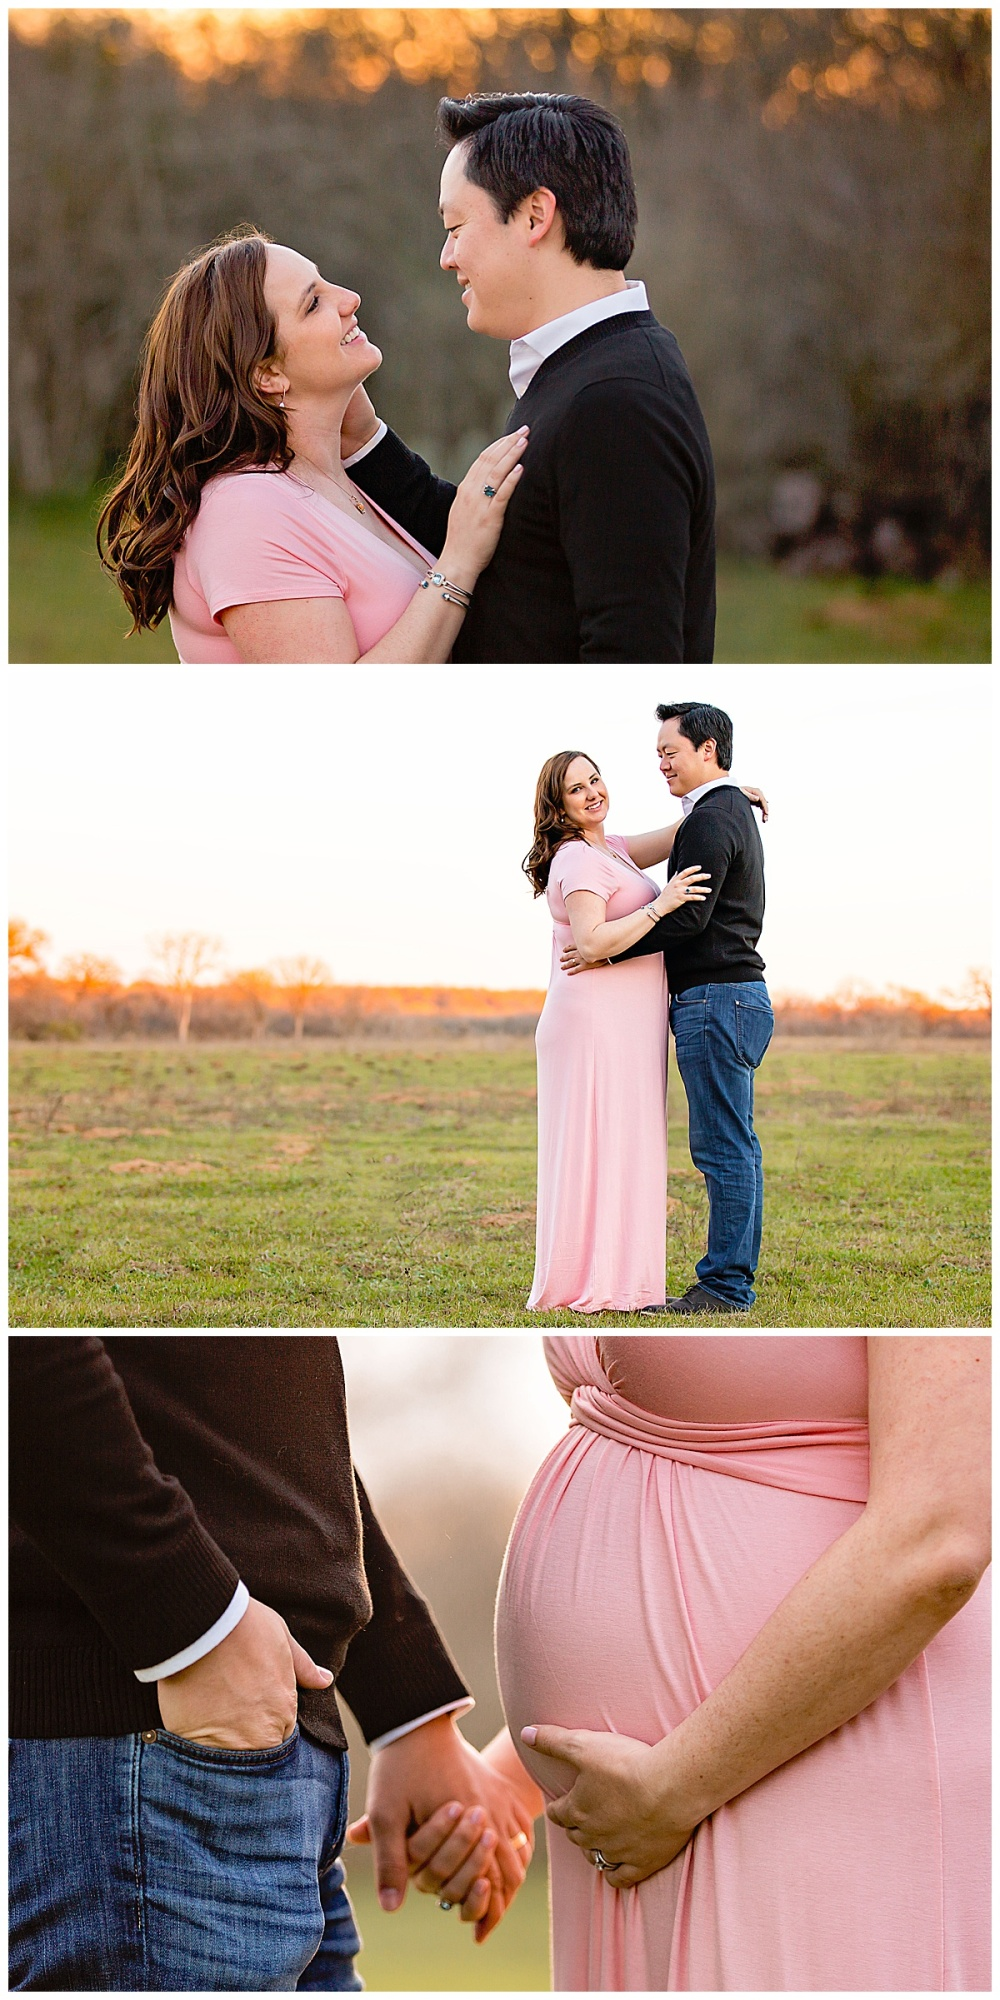 Maternity-Photographer-Texas-Carly-Barton-Photography-LaVernia-Photos_0015.jpg